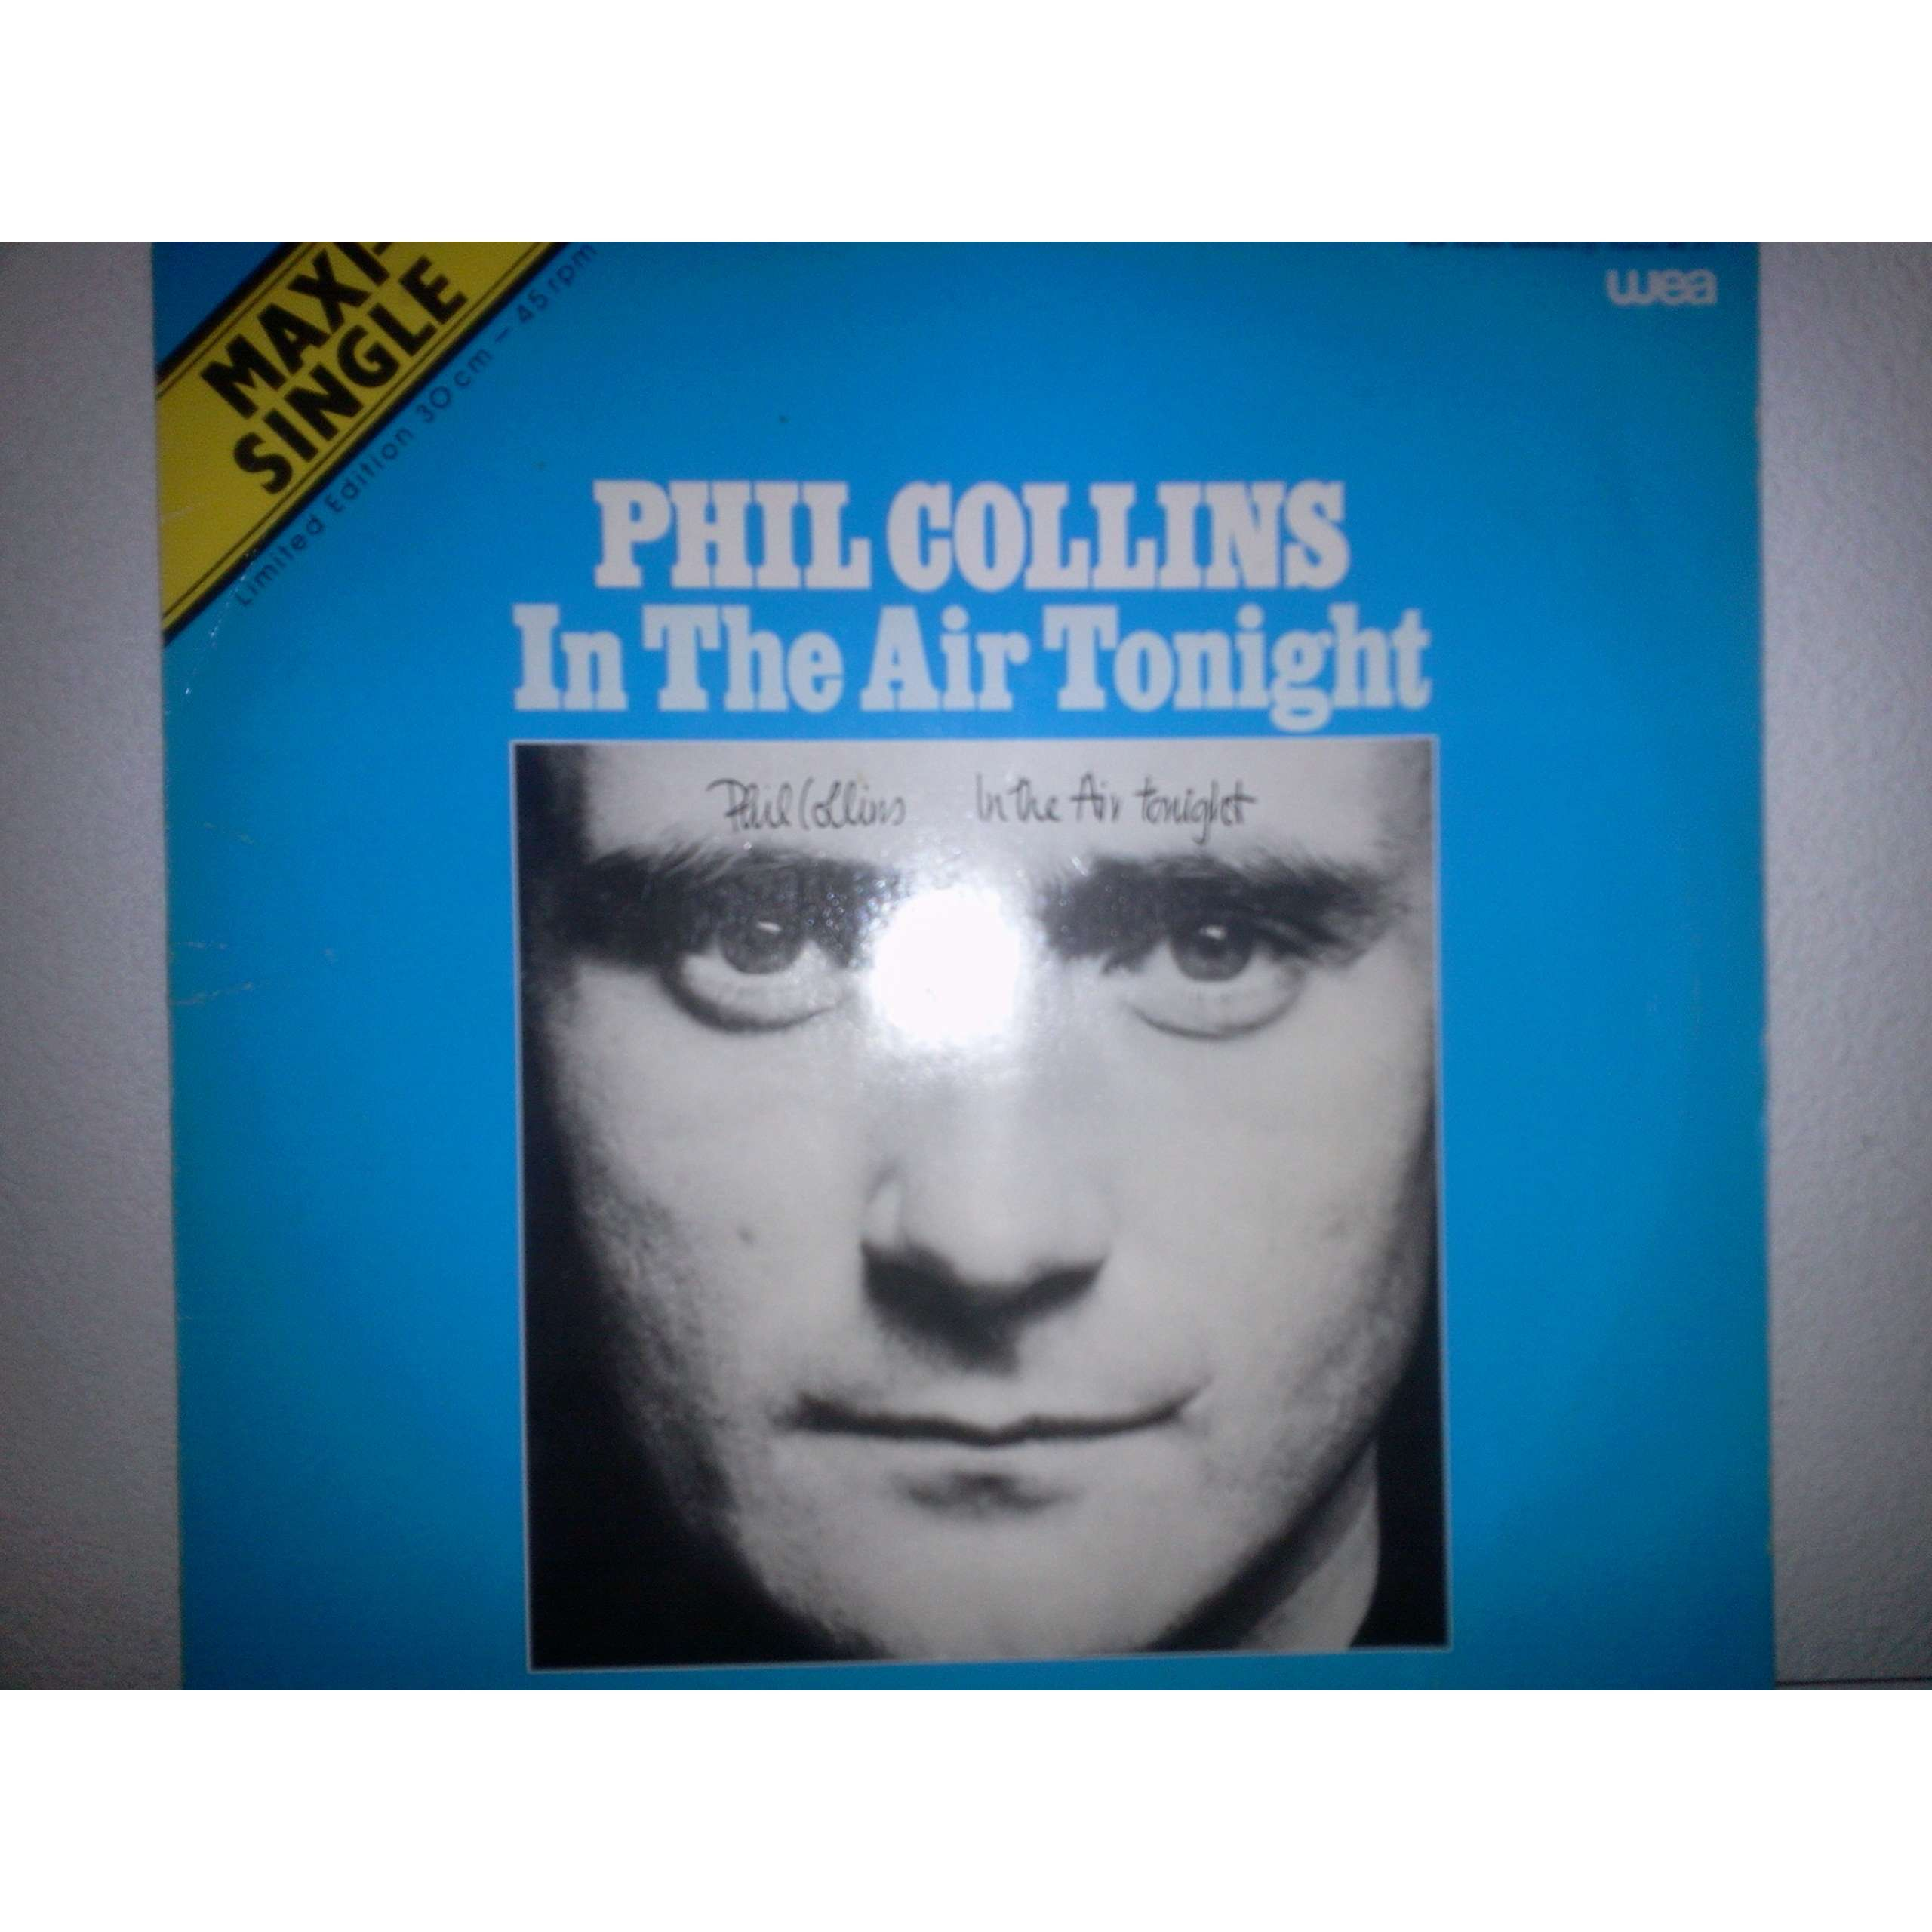 song meanings and information of in the air tonight by phil collins What does phil collins's song against all odds (take a look at me now) mean  phil collins song meanings in the air tonight.